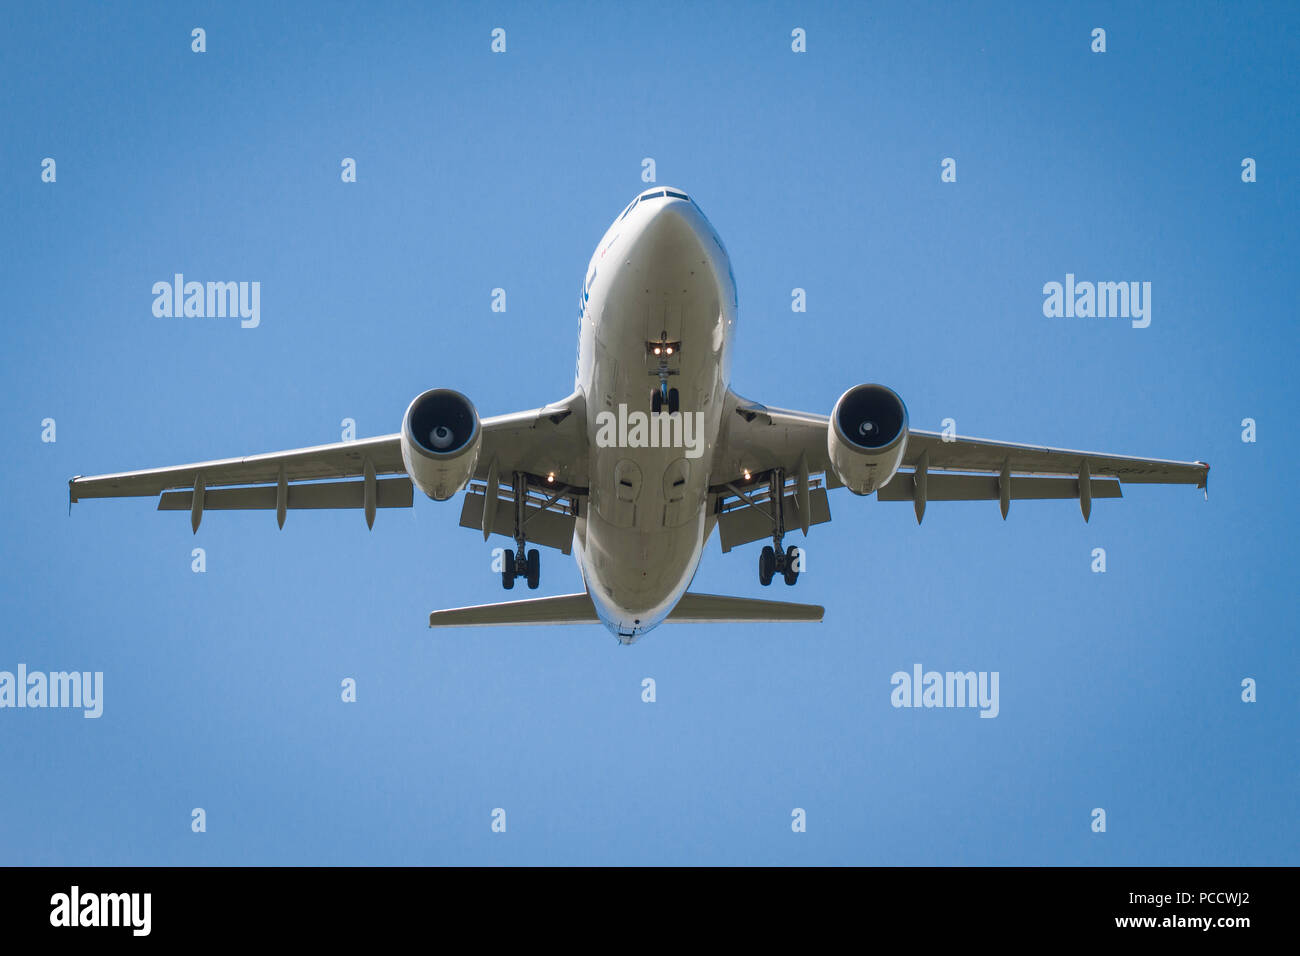 Air Transit C-GFAT Airbus A310-308 taking off from Manchester Airport - Stock Image